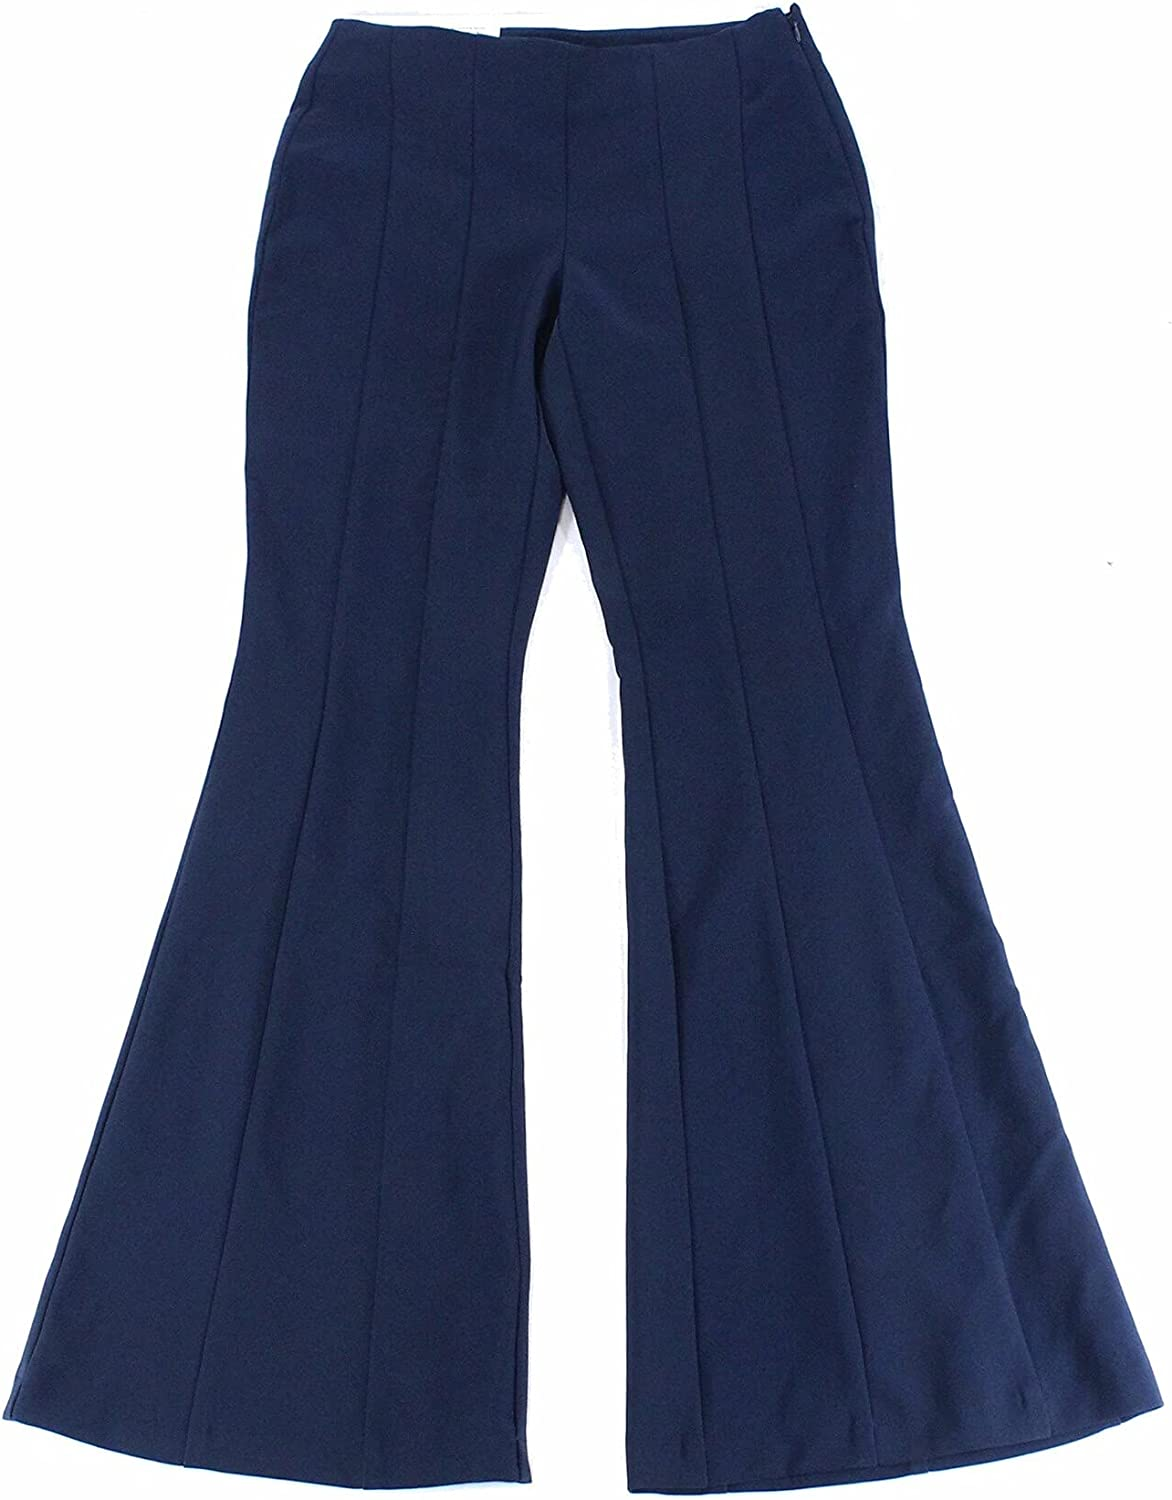 I.N.C. International Concepts INC Womens Navy Flare Wear to Work Pants Size 14